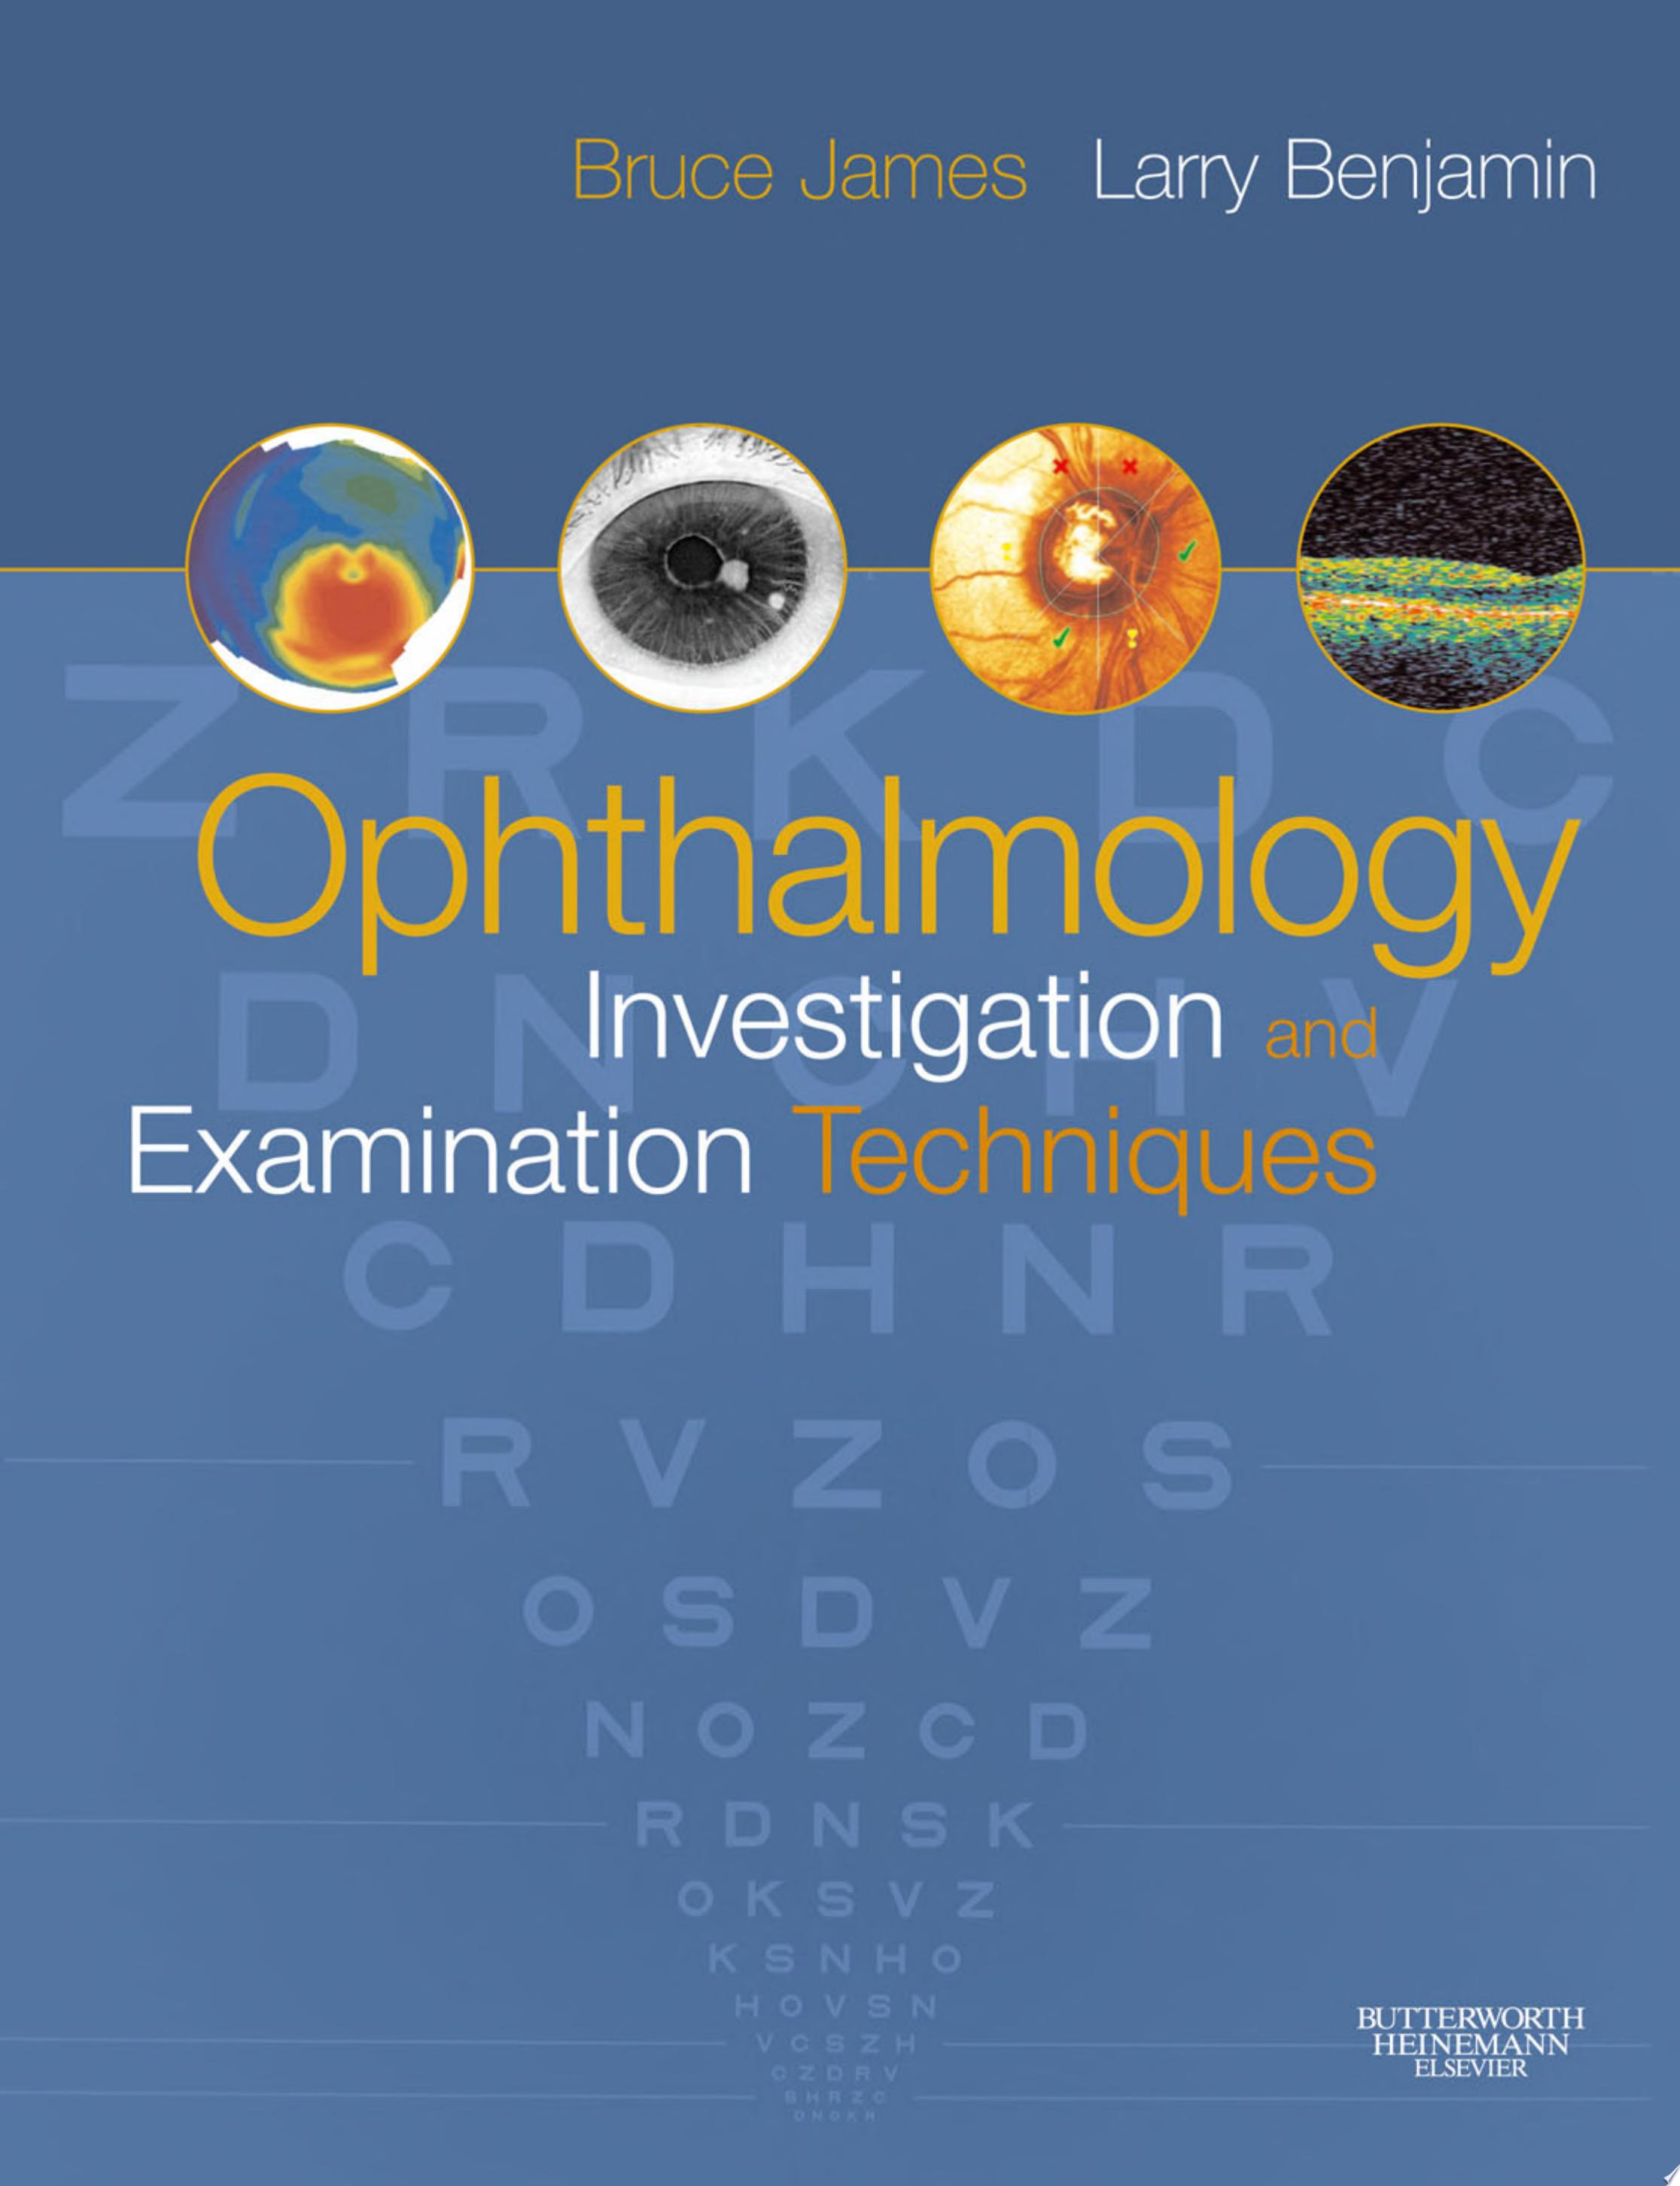 E Book   Ophthalmology  Investigation and Examination Techniques